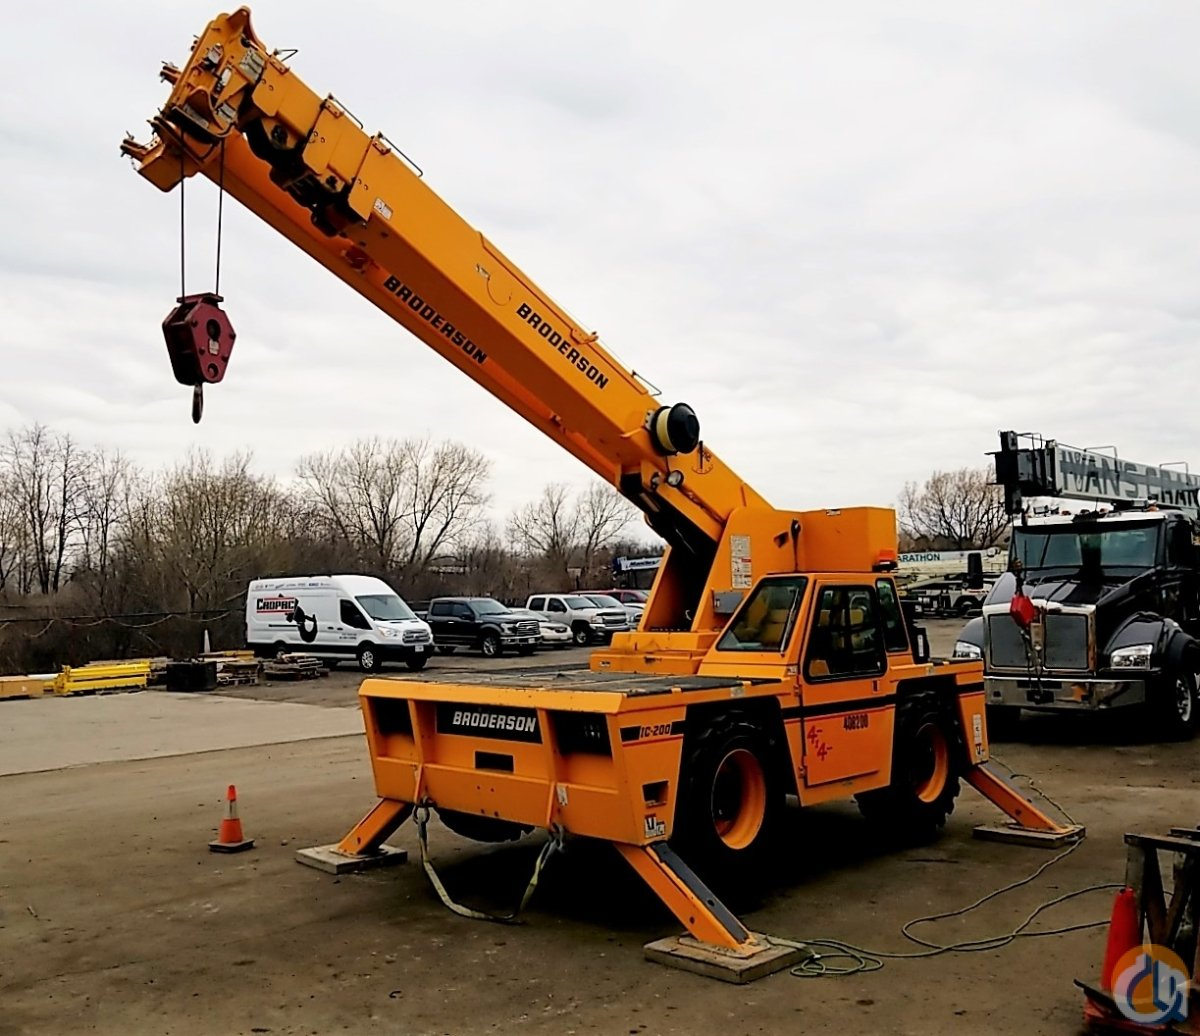 2015 Broderson Diesel IC-200-3H Crane for Sale in Oakville Ontario on CraneNetwork.com